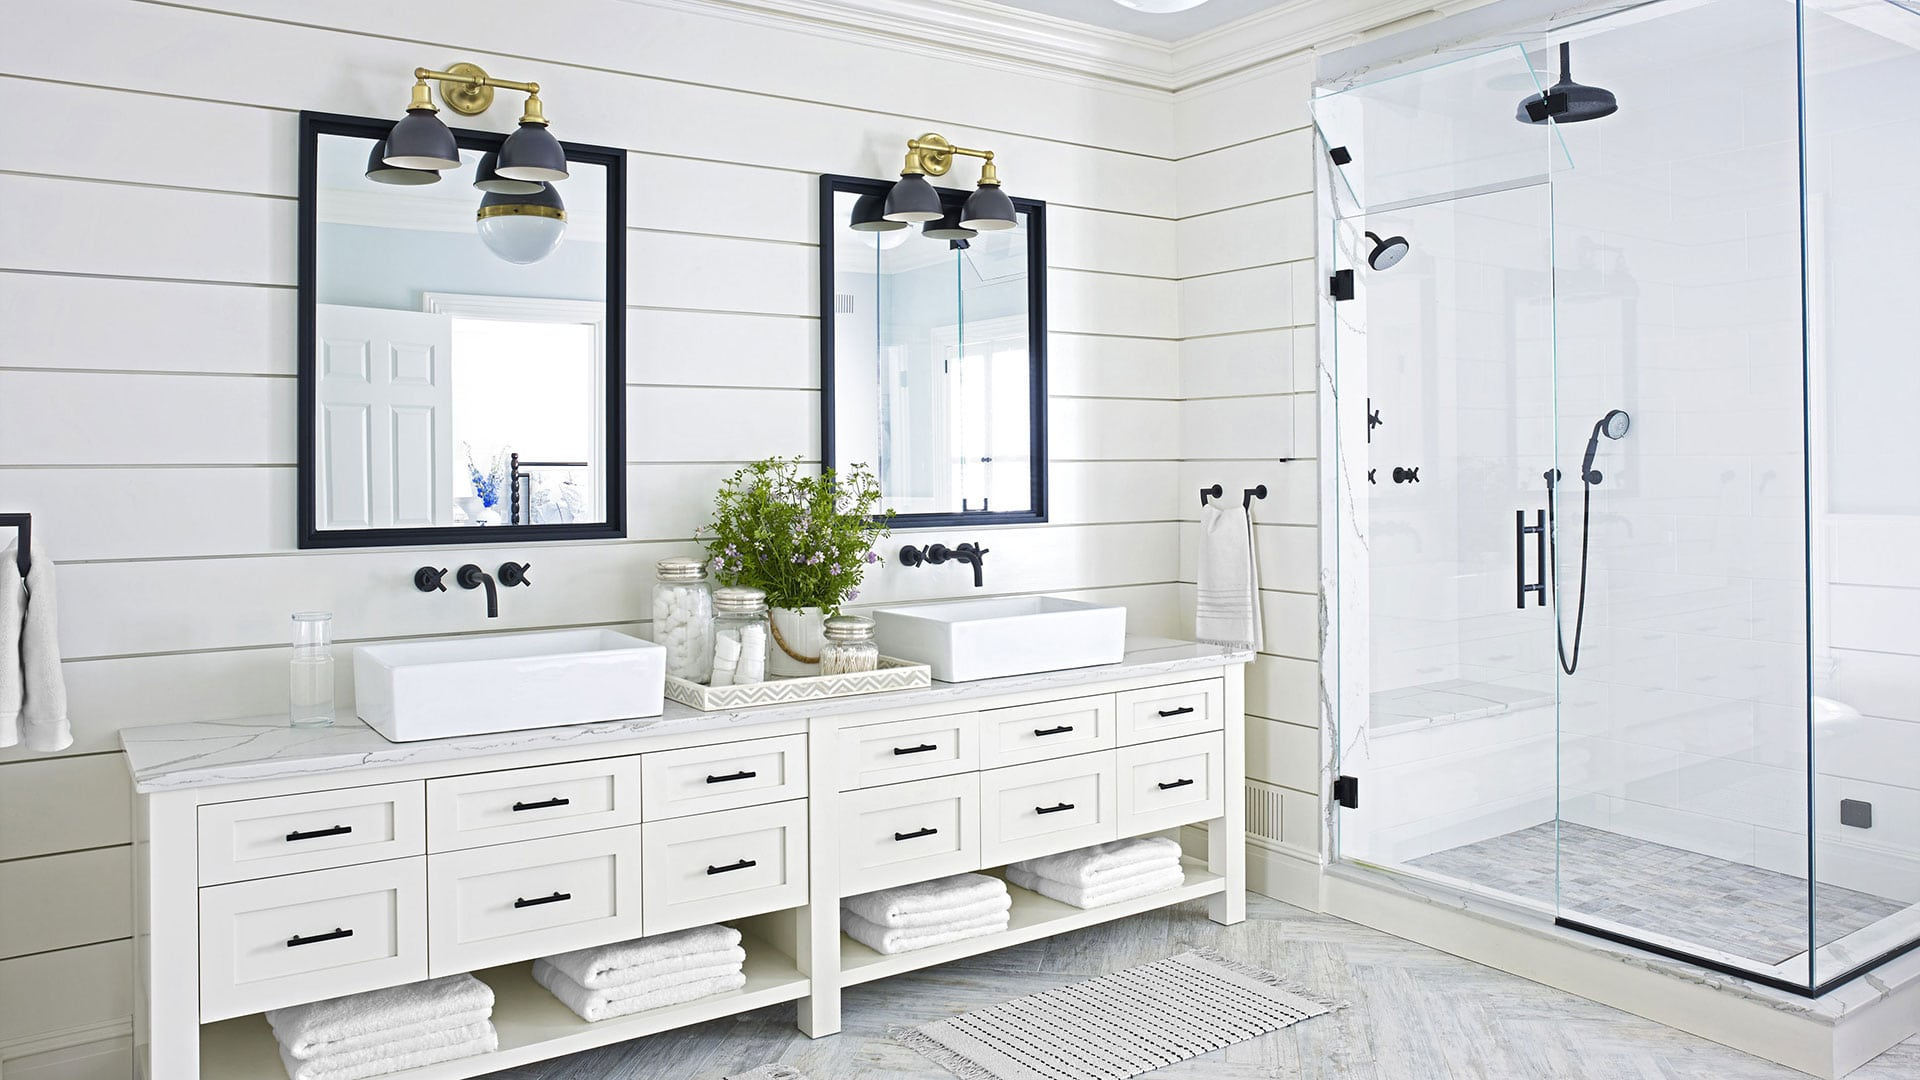 Turn your dream bathroom into reality